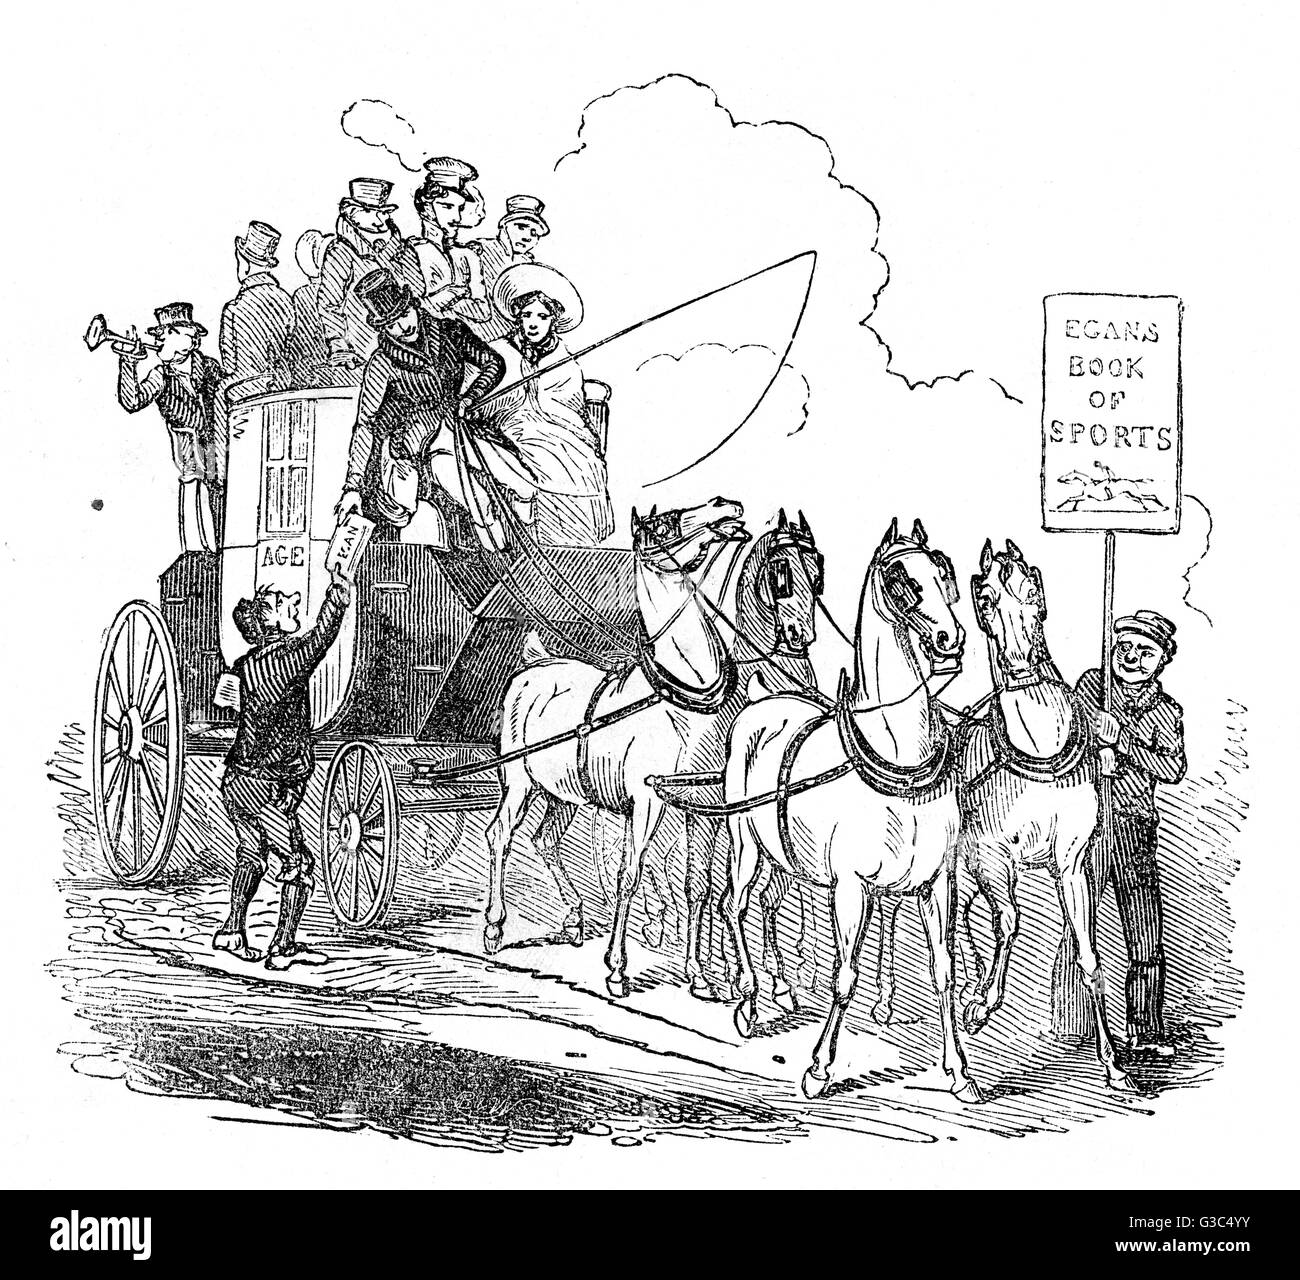 Illustration to the opening page of Pierce Egan's Book of Sports, showing people on a stagecoach on their way - Stock Image